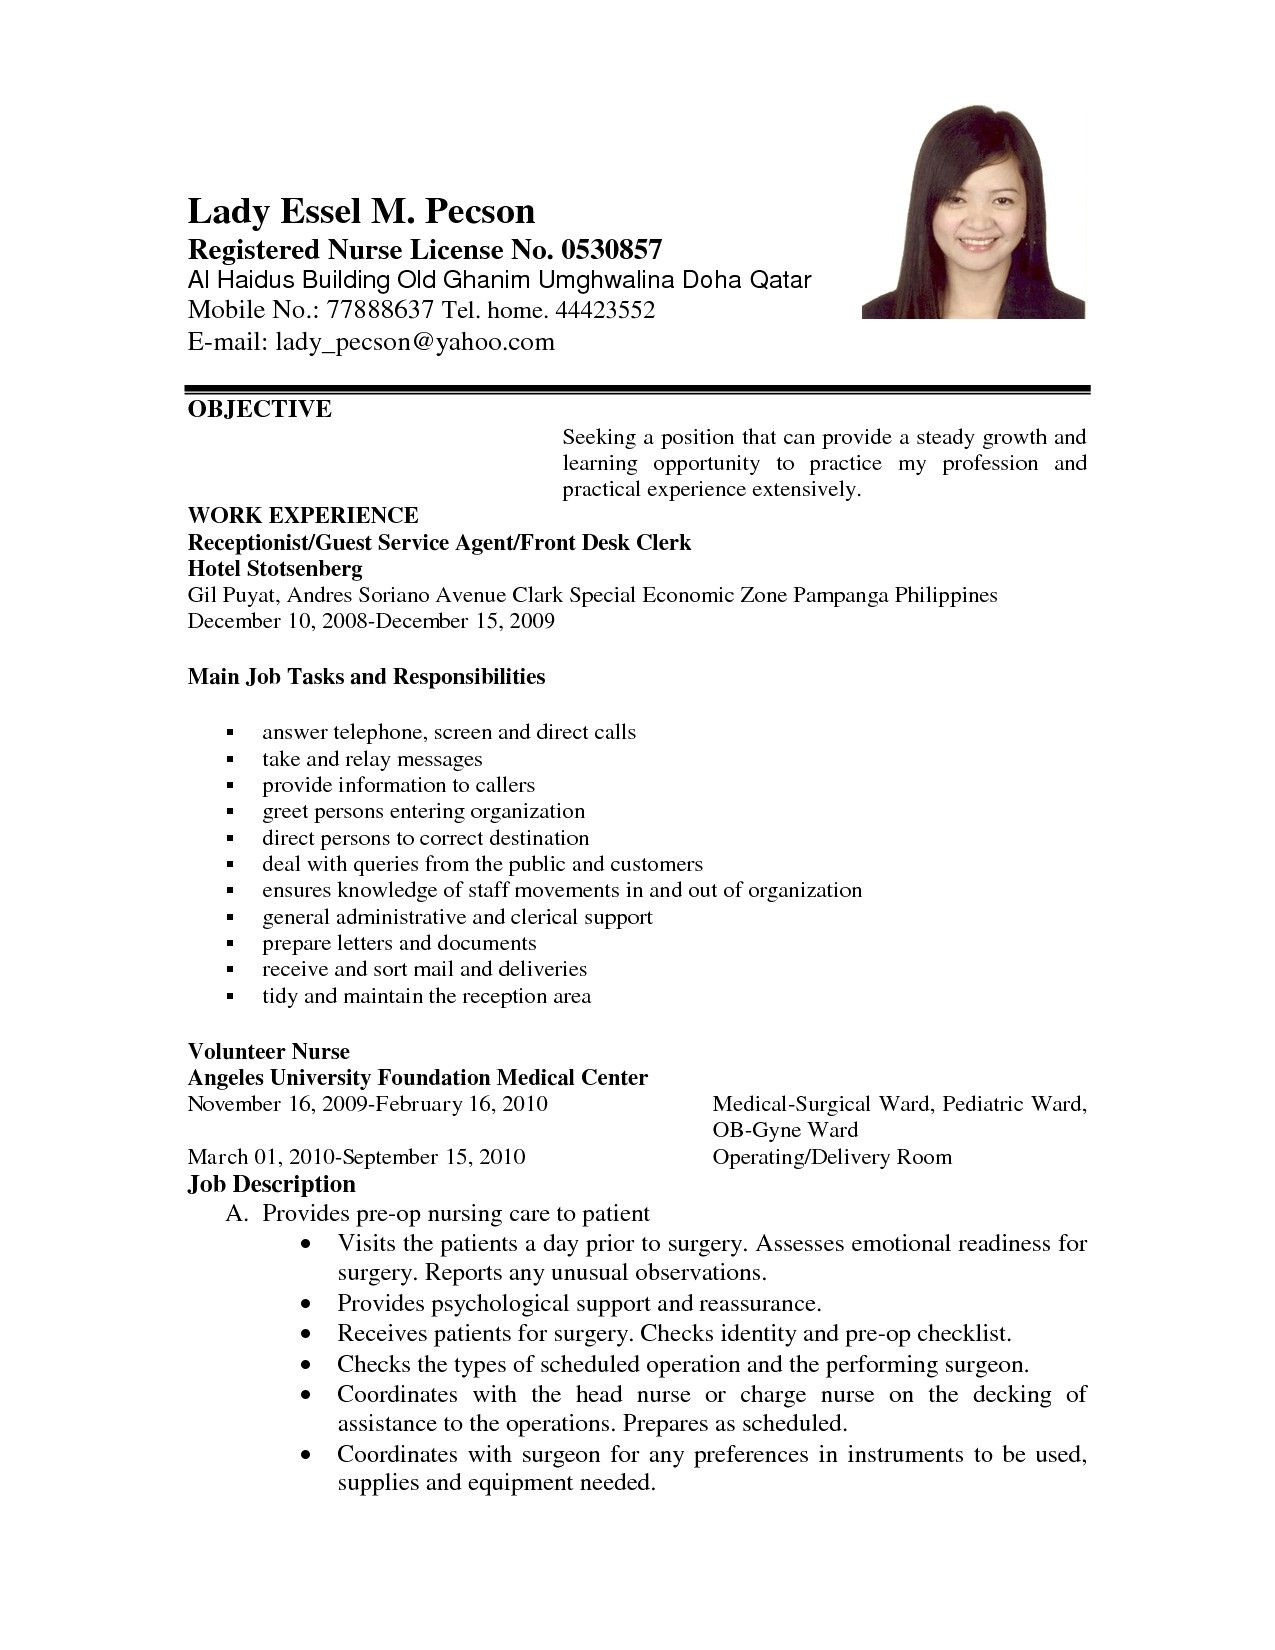 Sample Objective for Resume for Any Job Career Objective Resume Examples Awesome Example Applying for Job ...